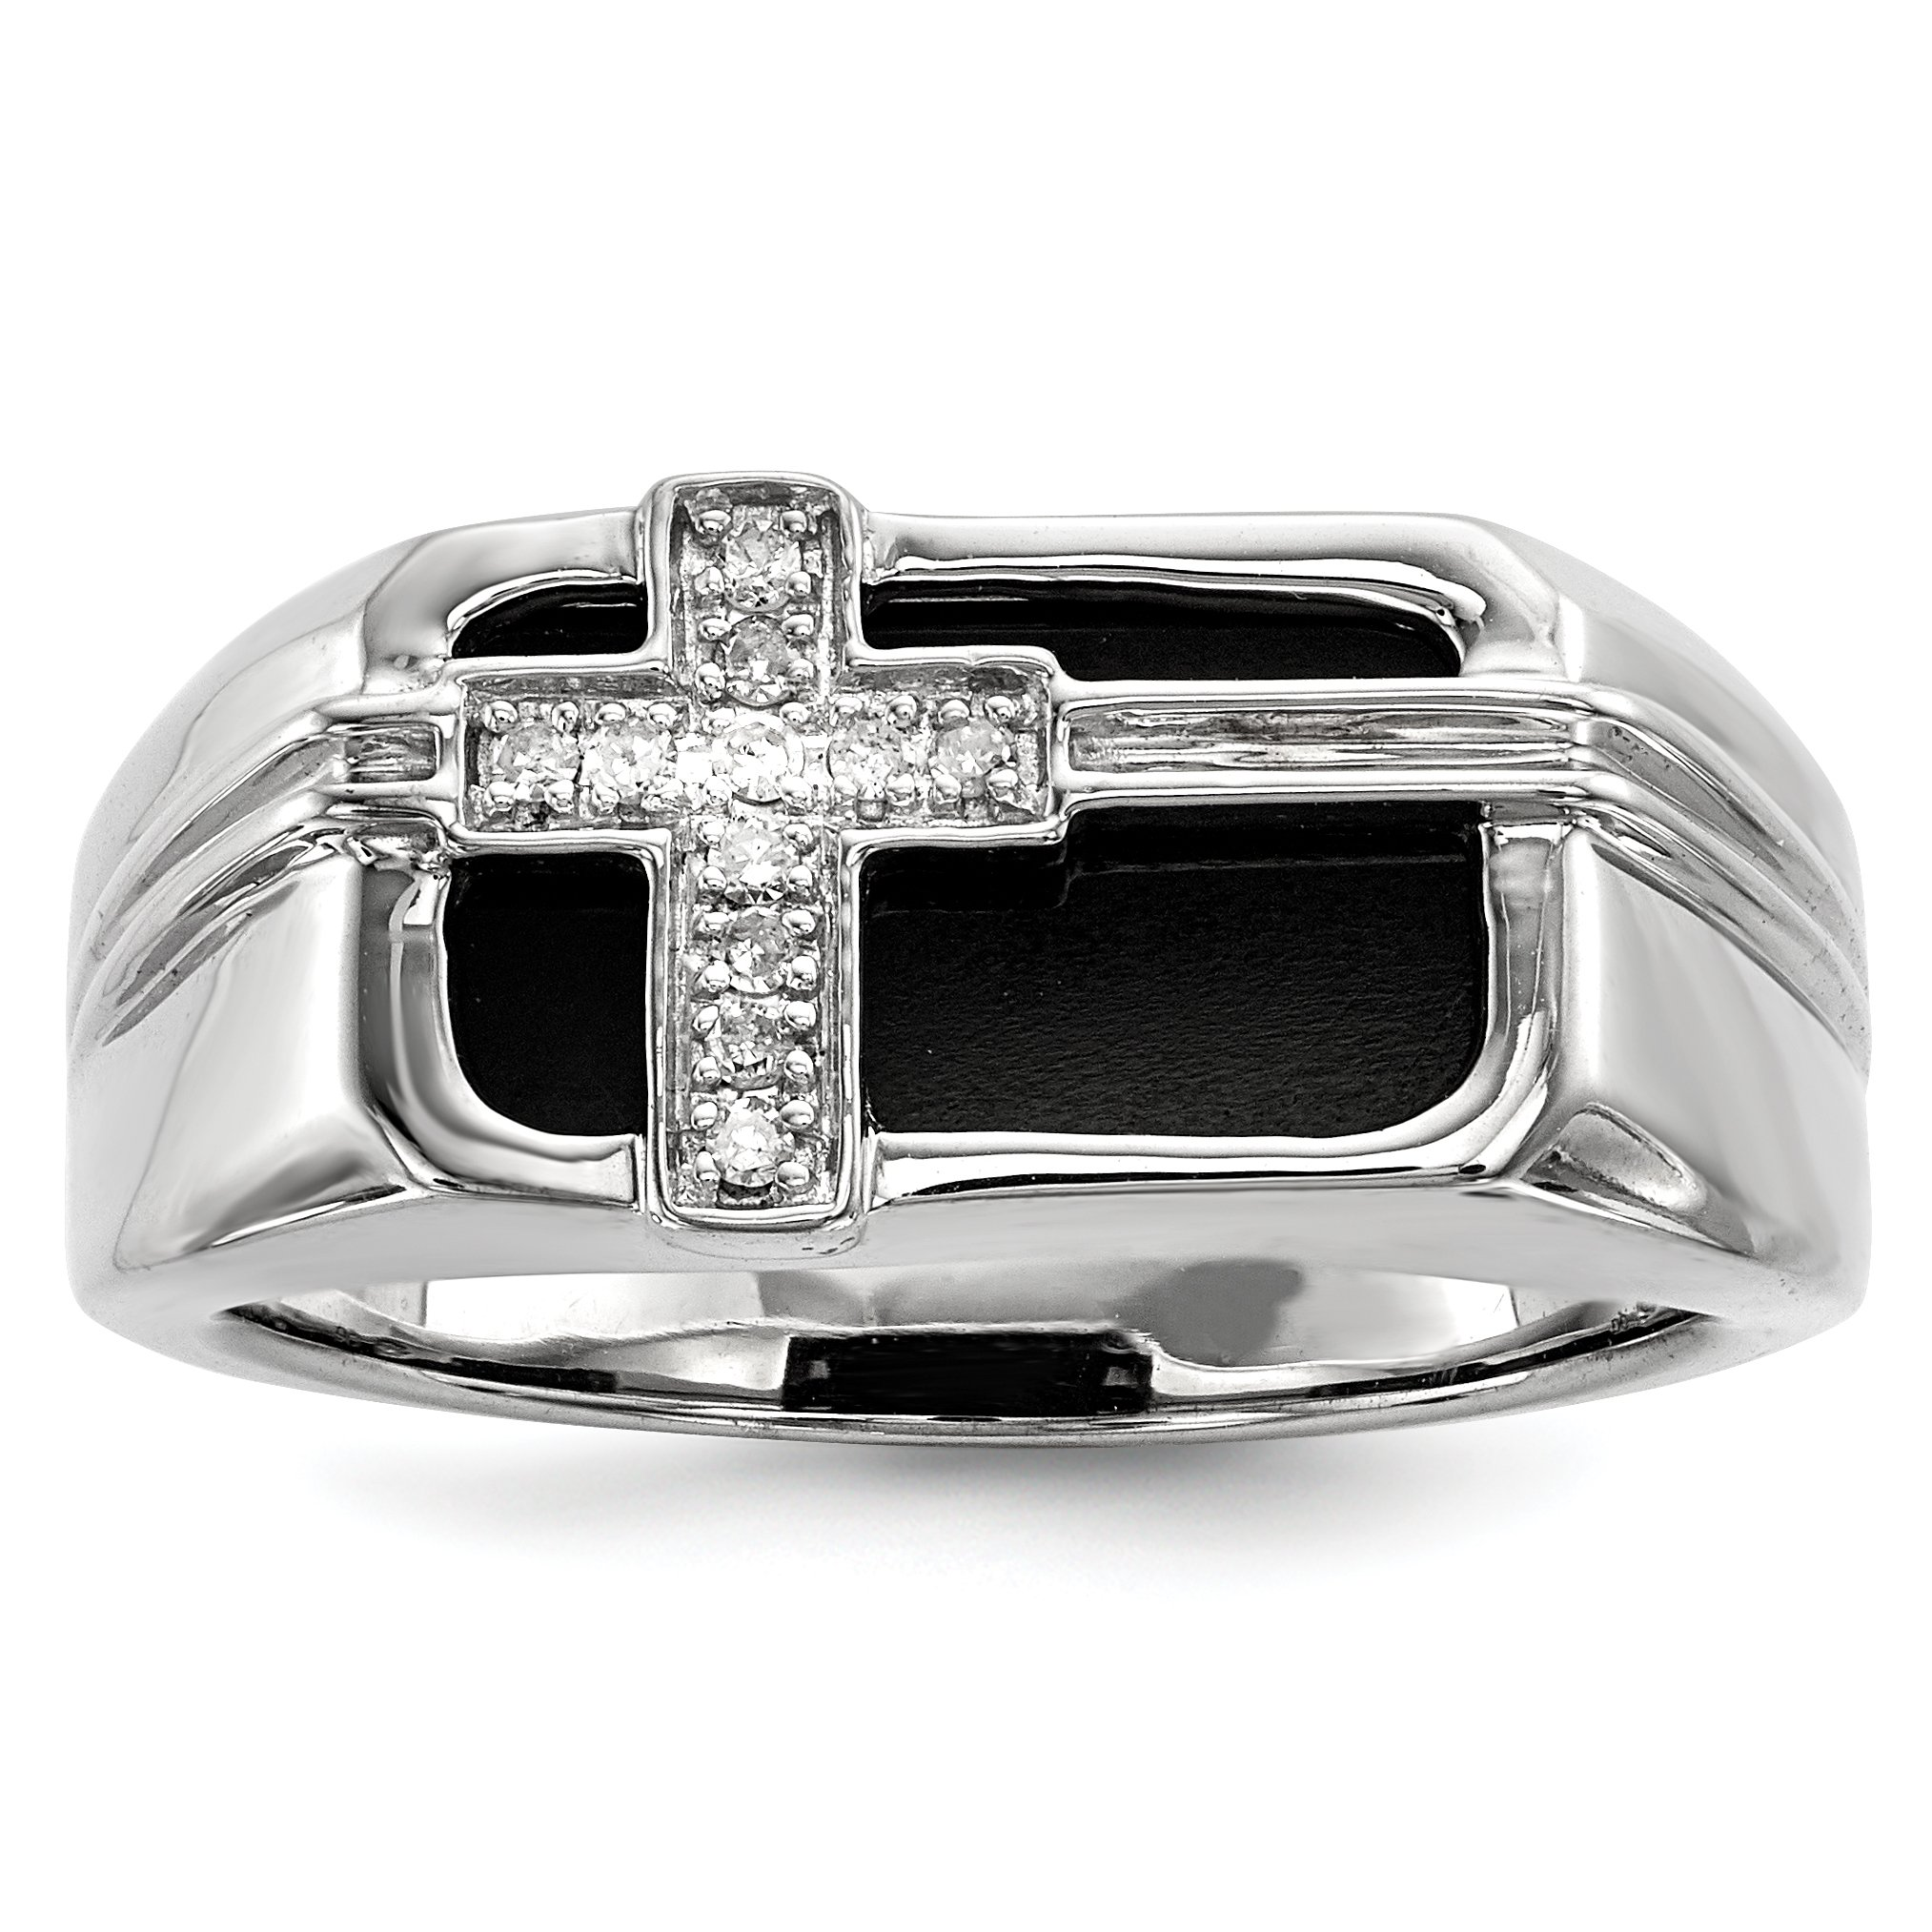 ICE CARATS 925 Sterling Silver Diamond Black Onyx Cross Religious Mens Band Ring Size 10.00 Man Fine Jewelry Dad Mens Gift Set